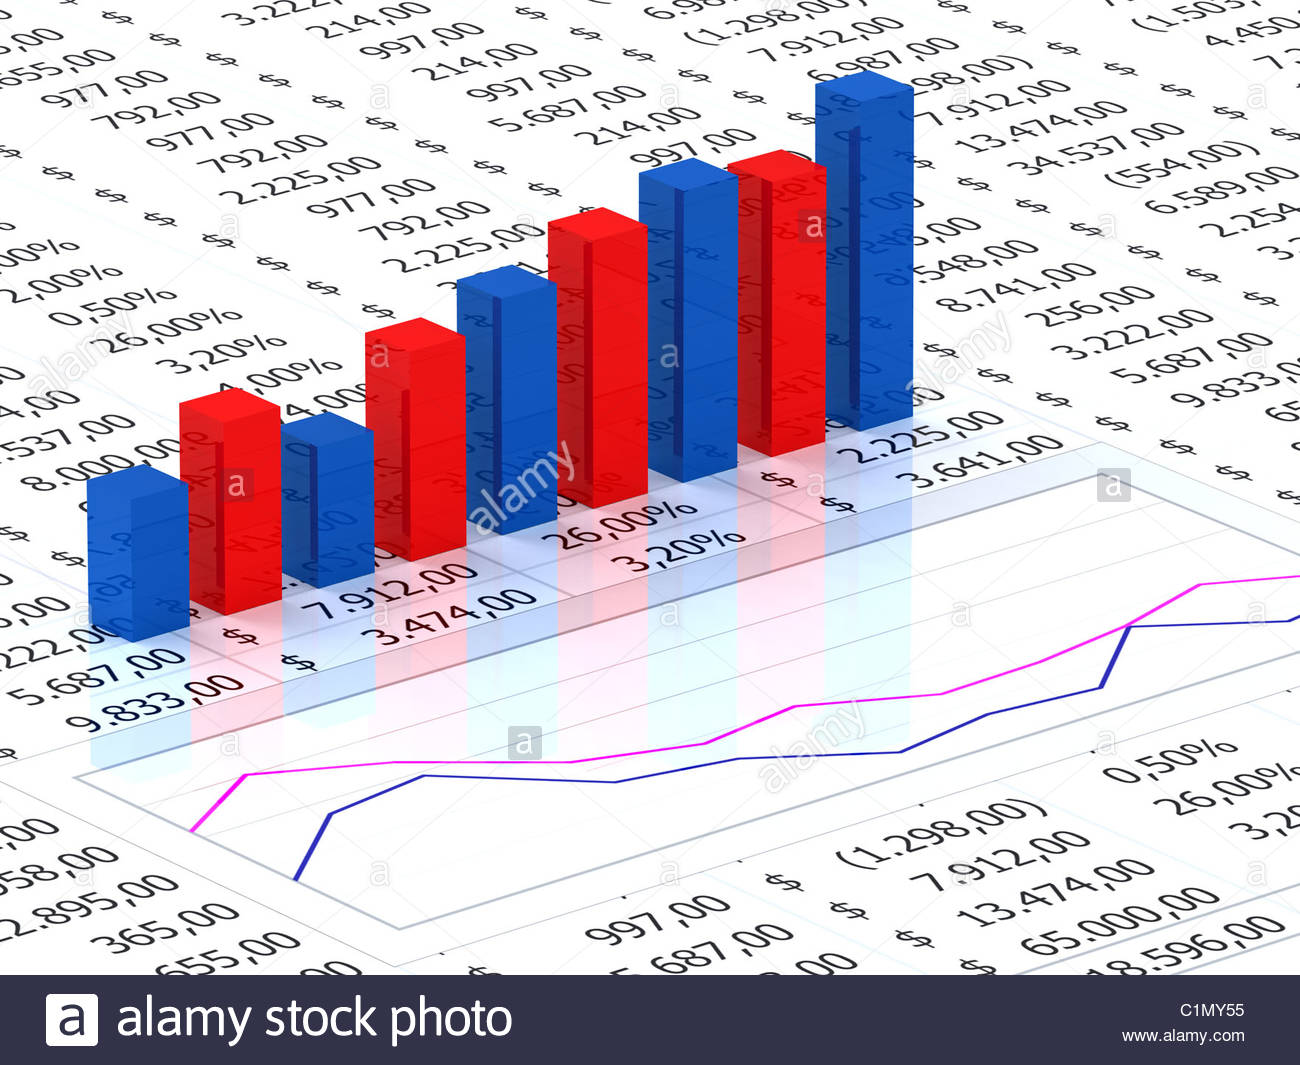 Spreadsheet with blue and red graph bars with numbers in 1300x1065